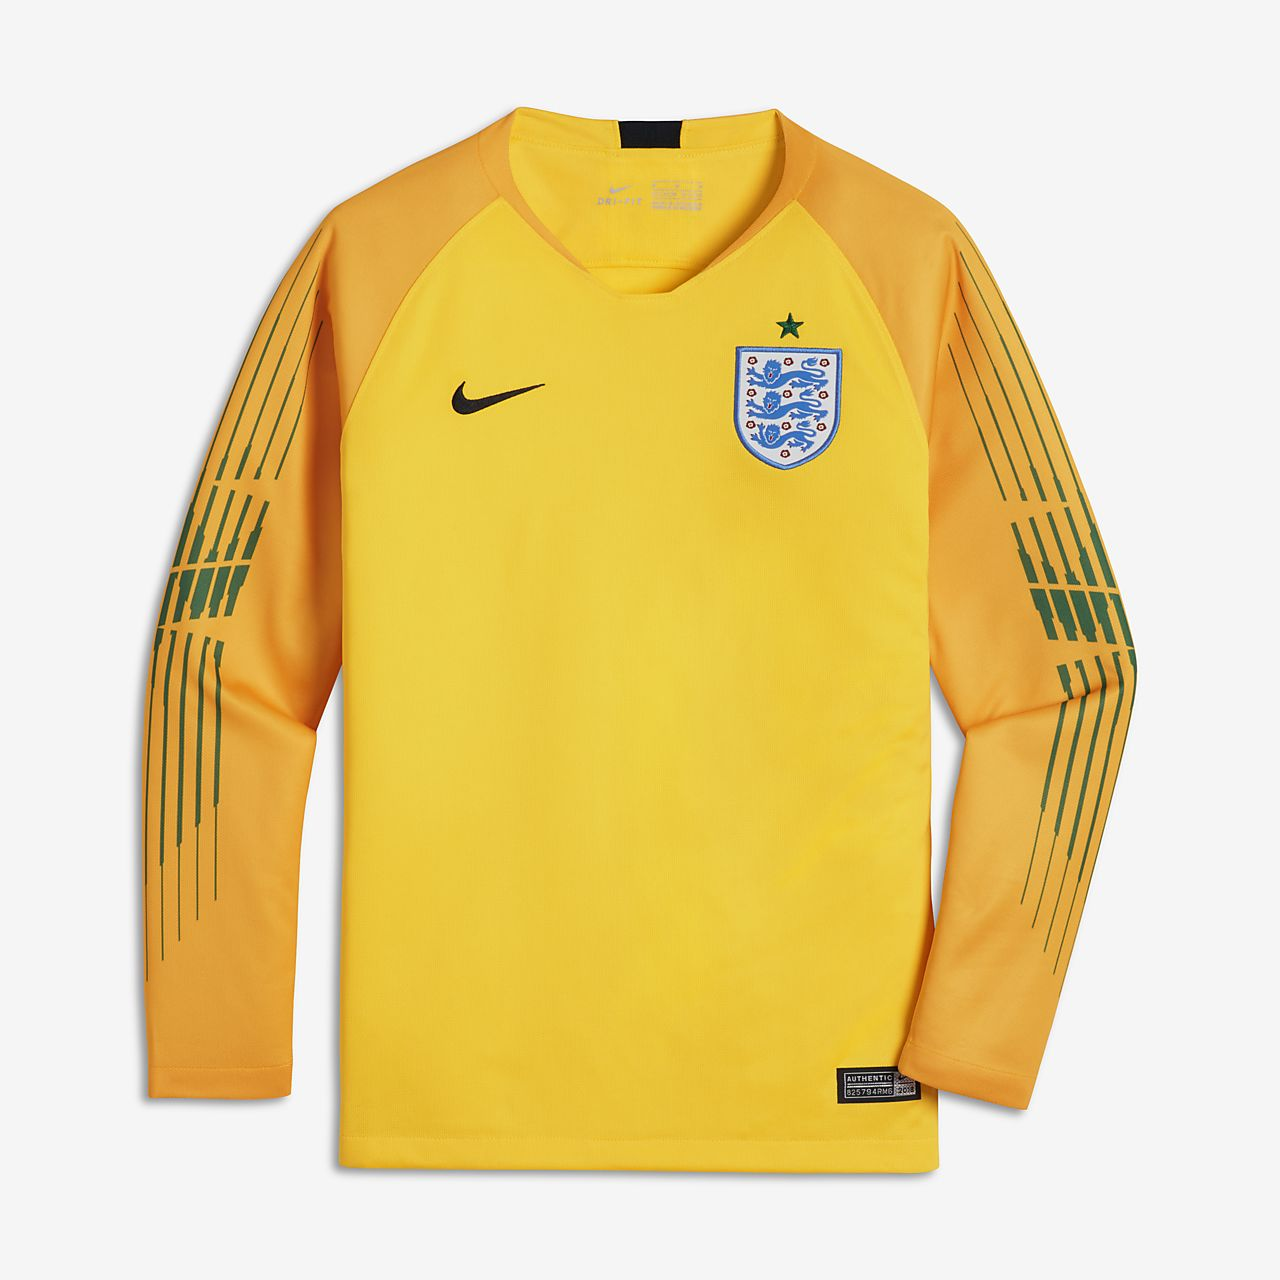 d76eb8b3d468 Older Kids  Long-Sleeve Football Shirt. 2018 England Stadium Goalkeeper